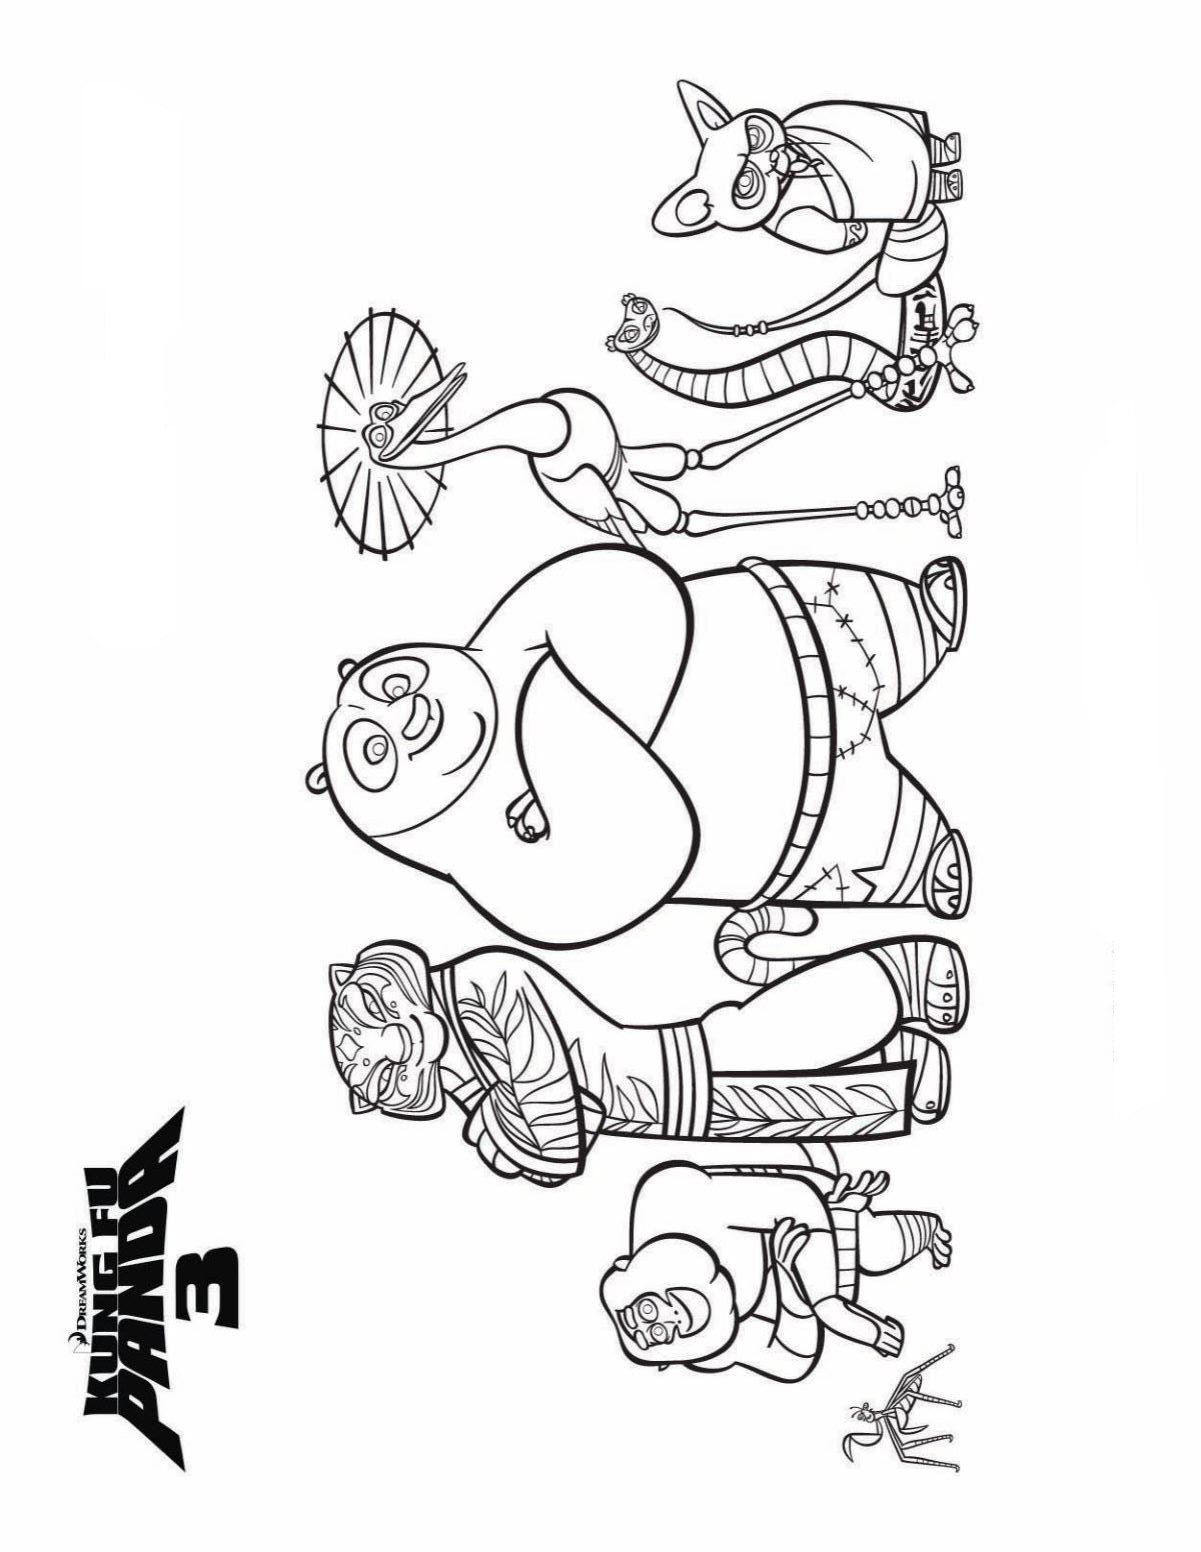 Printable coloring pages kung fu panda - And More Of These Coloring Pages Coloring Pages Of Kung Fu Panda Kung Fu Panda 2